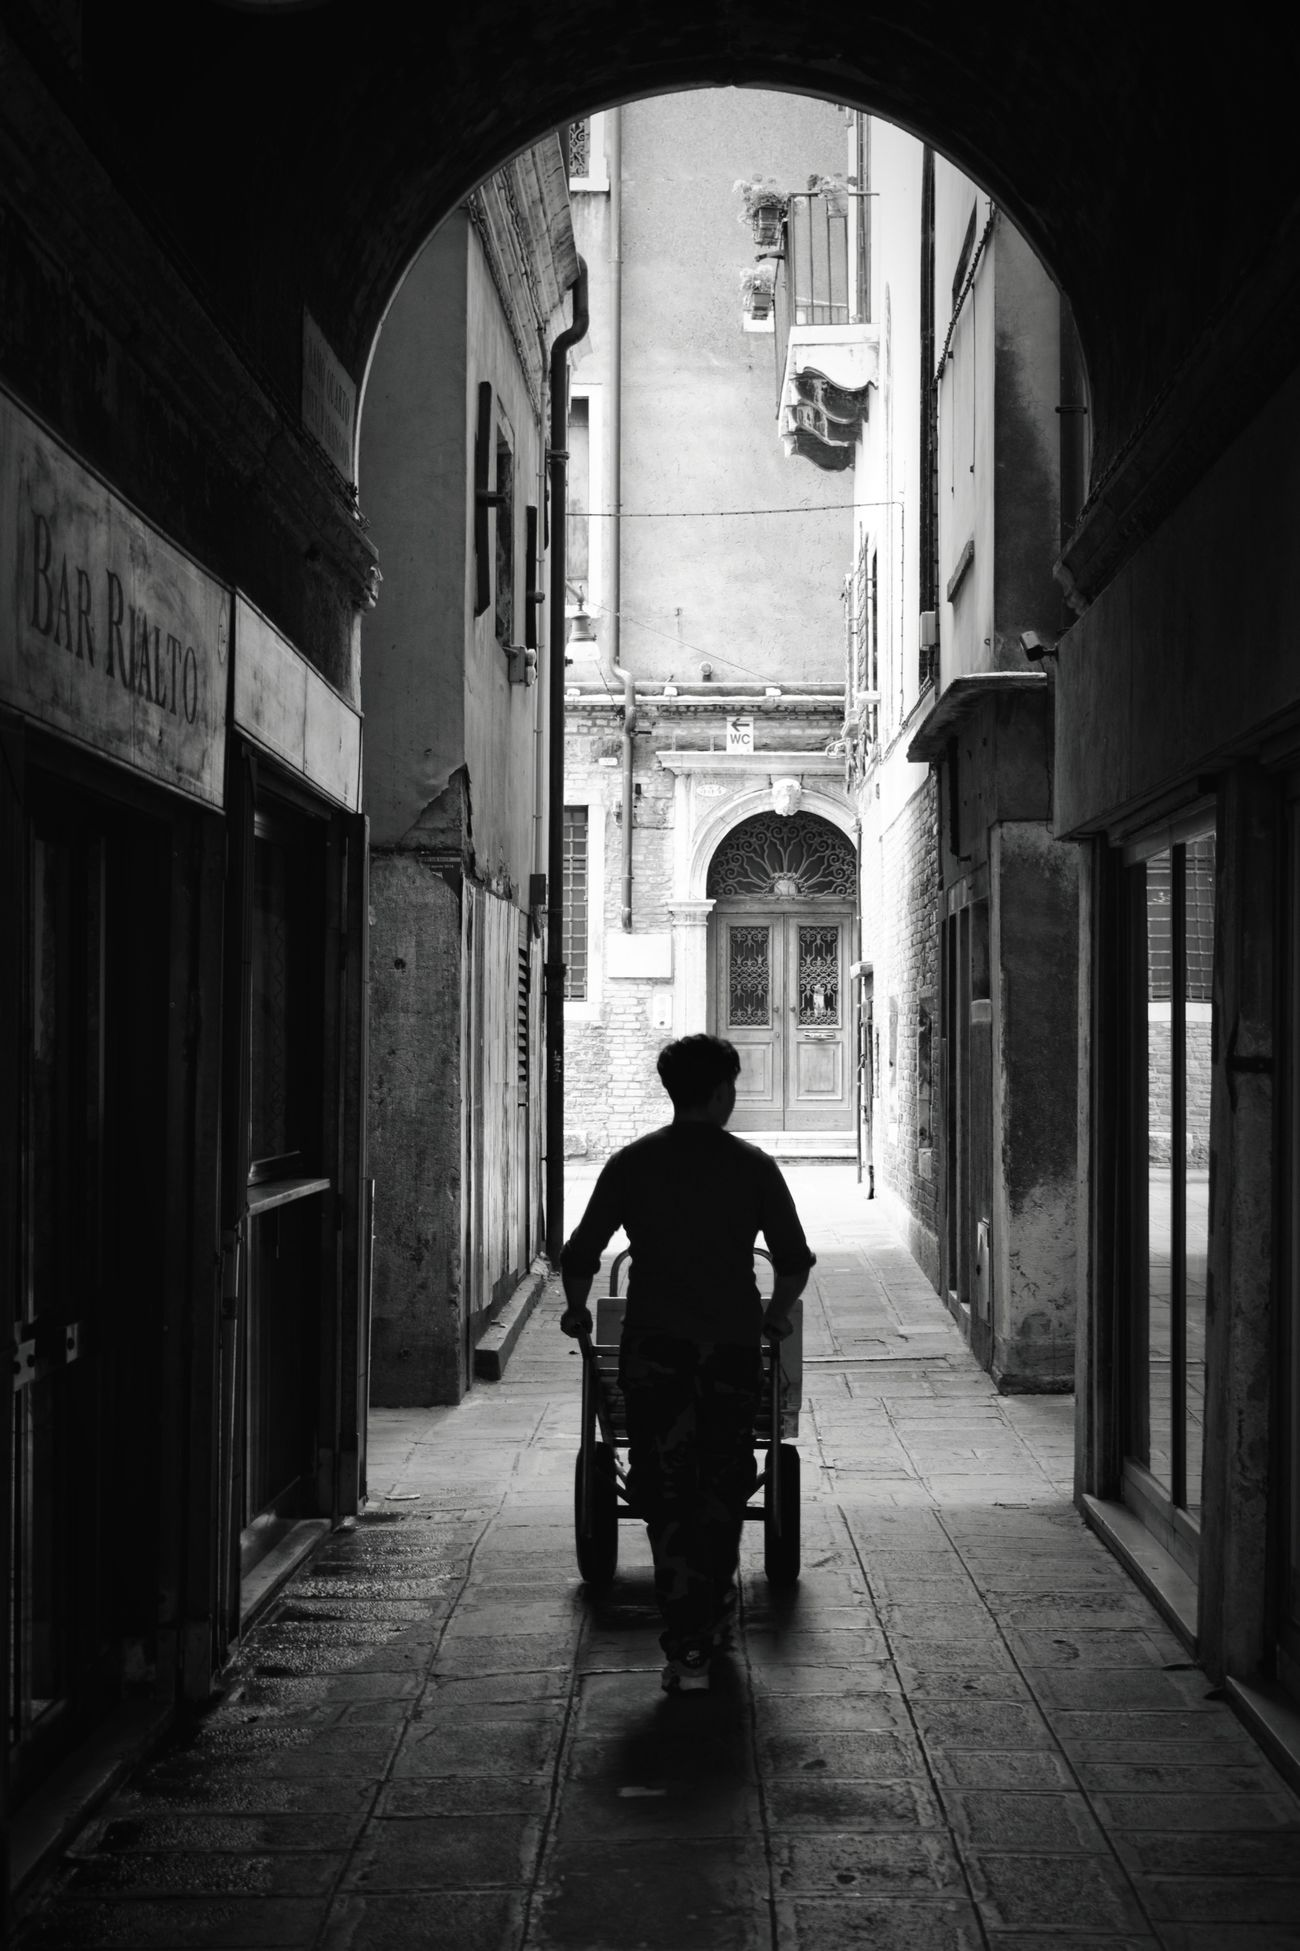 Catch me if you can People One Person Senior Adult Men City Indoors  Architecture Sleepwalker Venice Italy Adventure Trip Italianeography Vscophile Building Exterior Illuminated Blackandwhite Bnw_collection